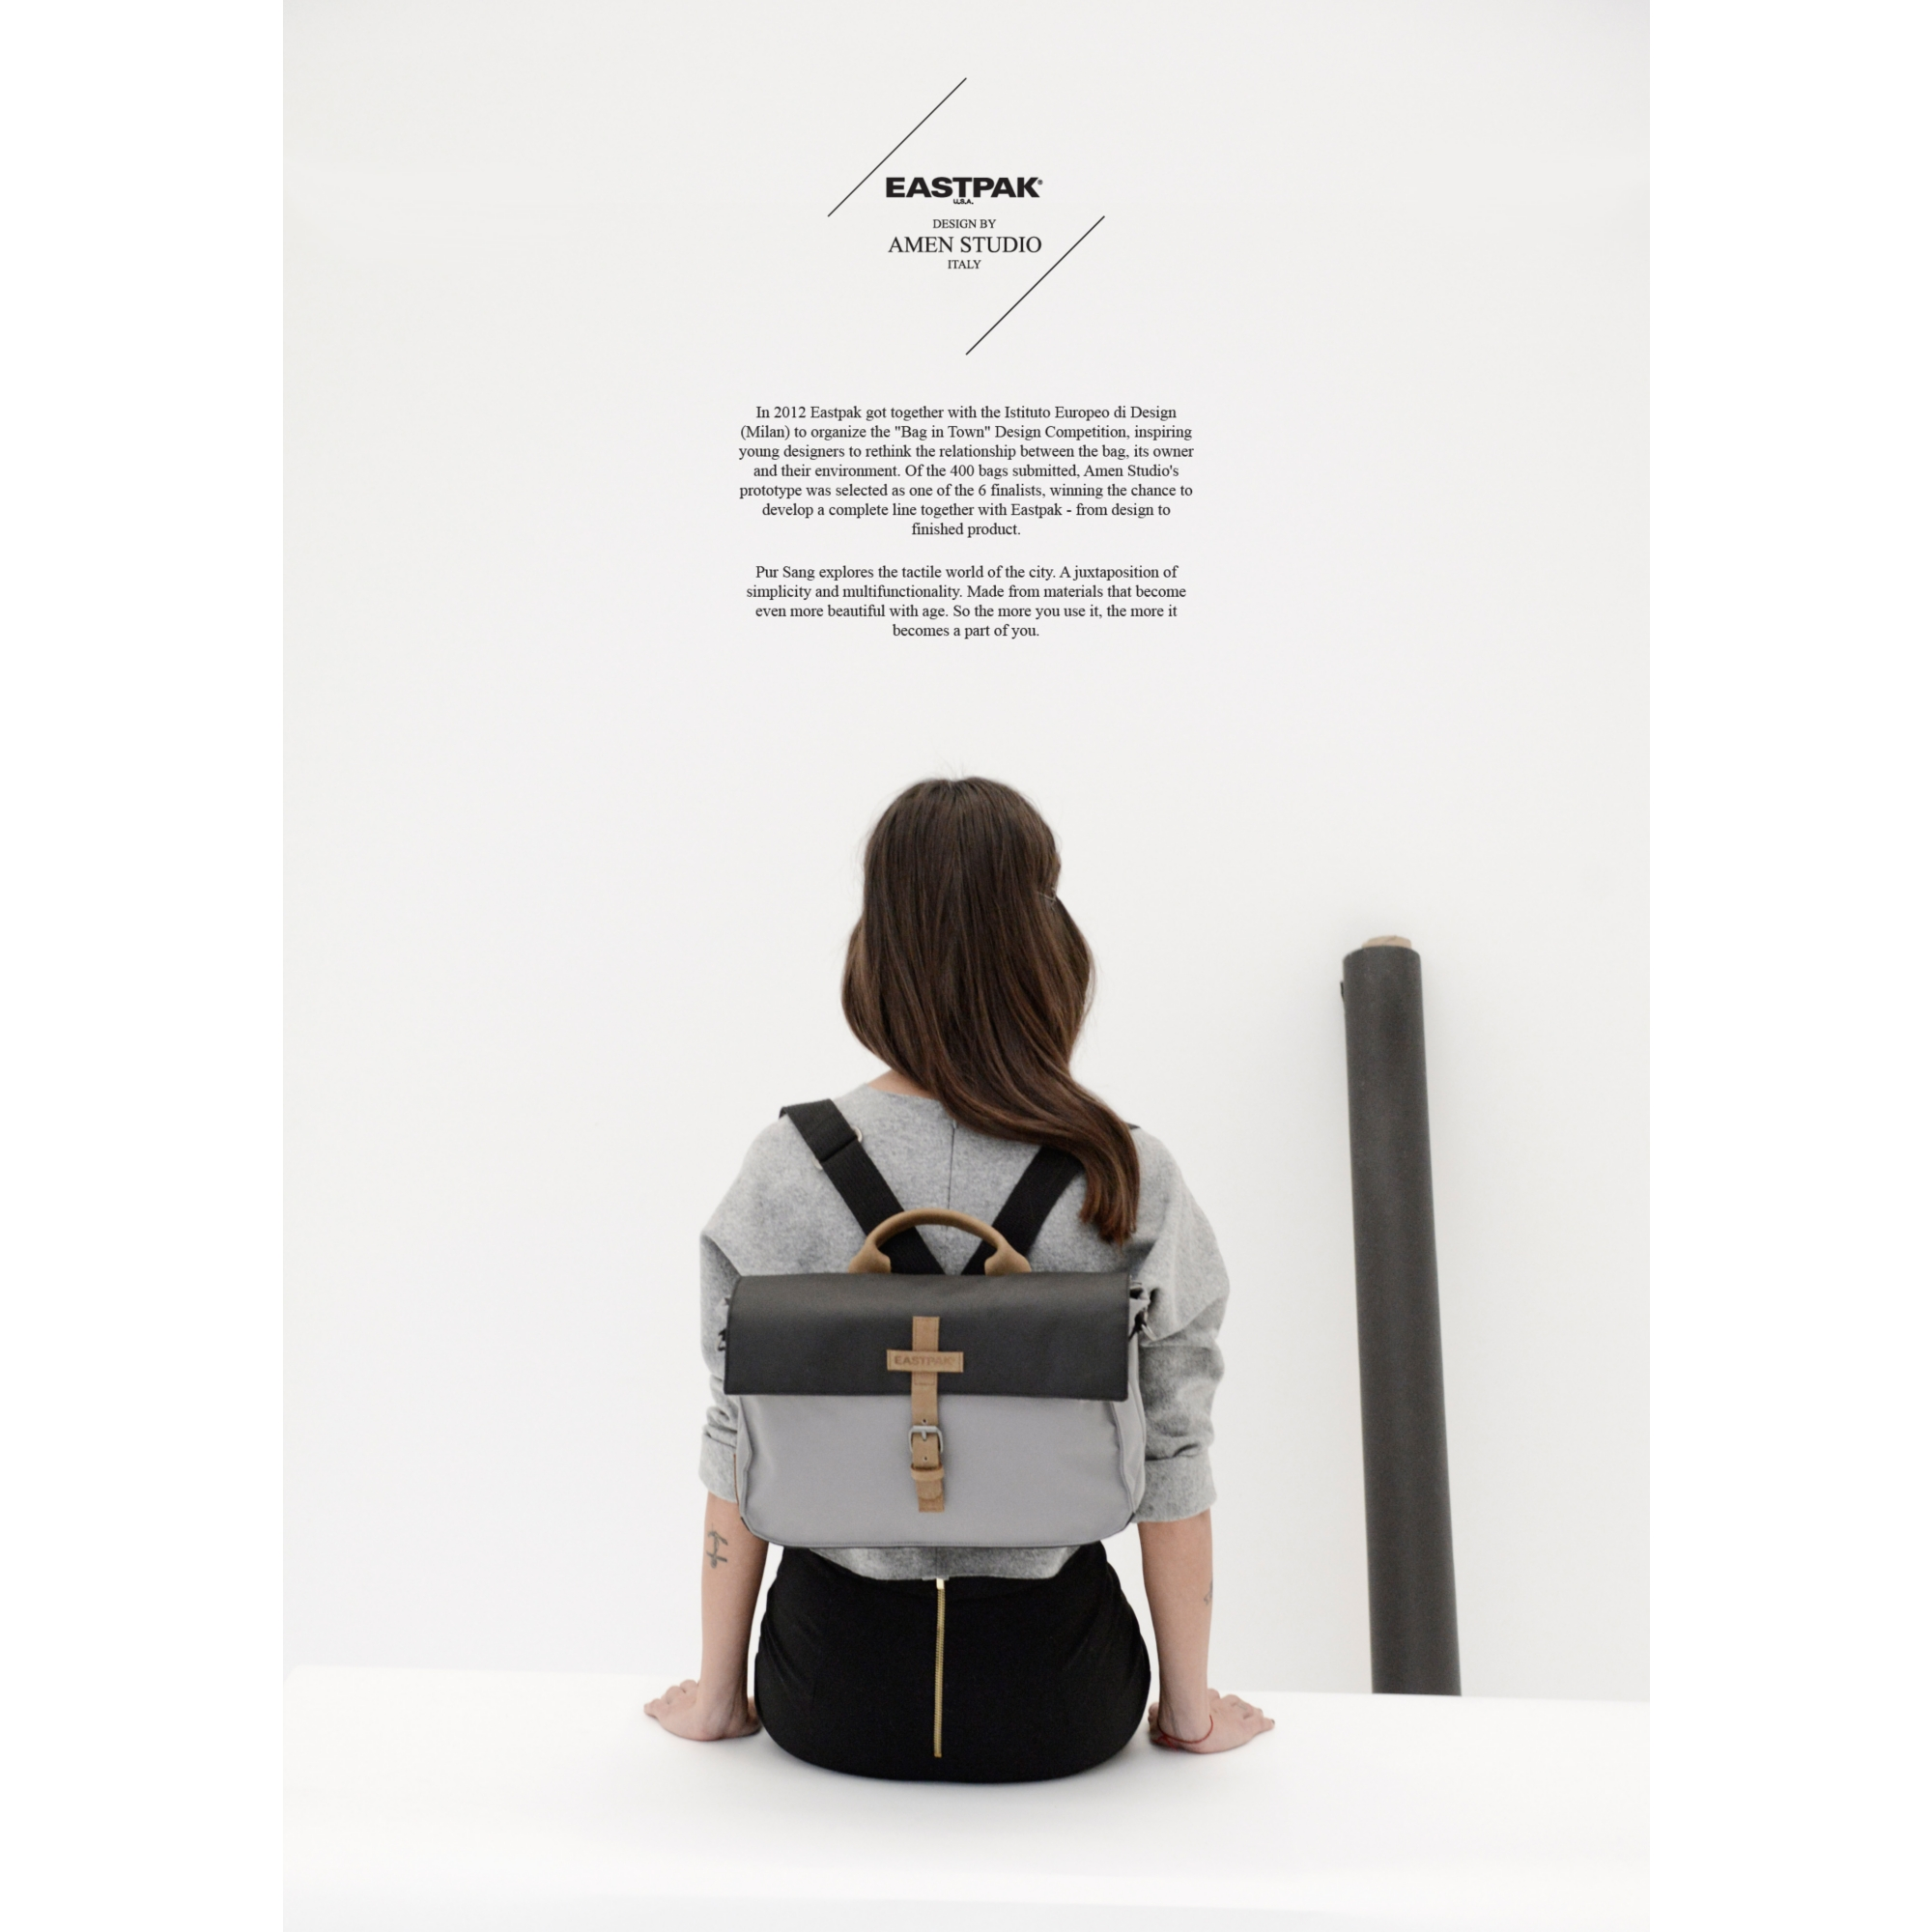 A3cardboard AMEN STUDIO   Capsule collection per Eastpak